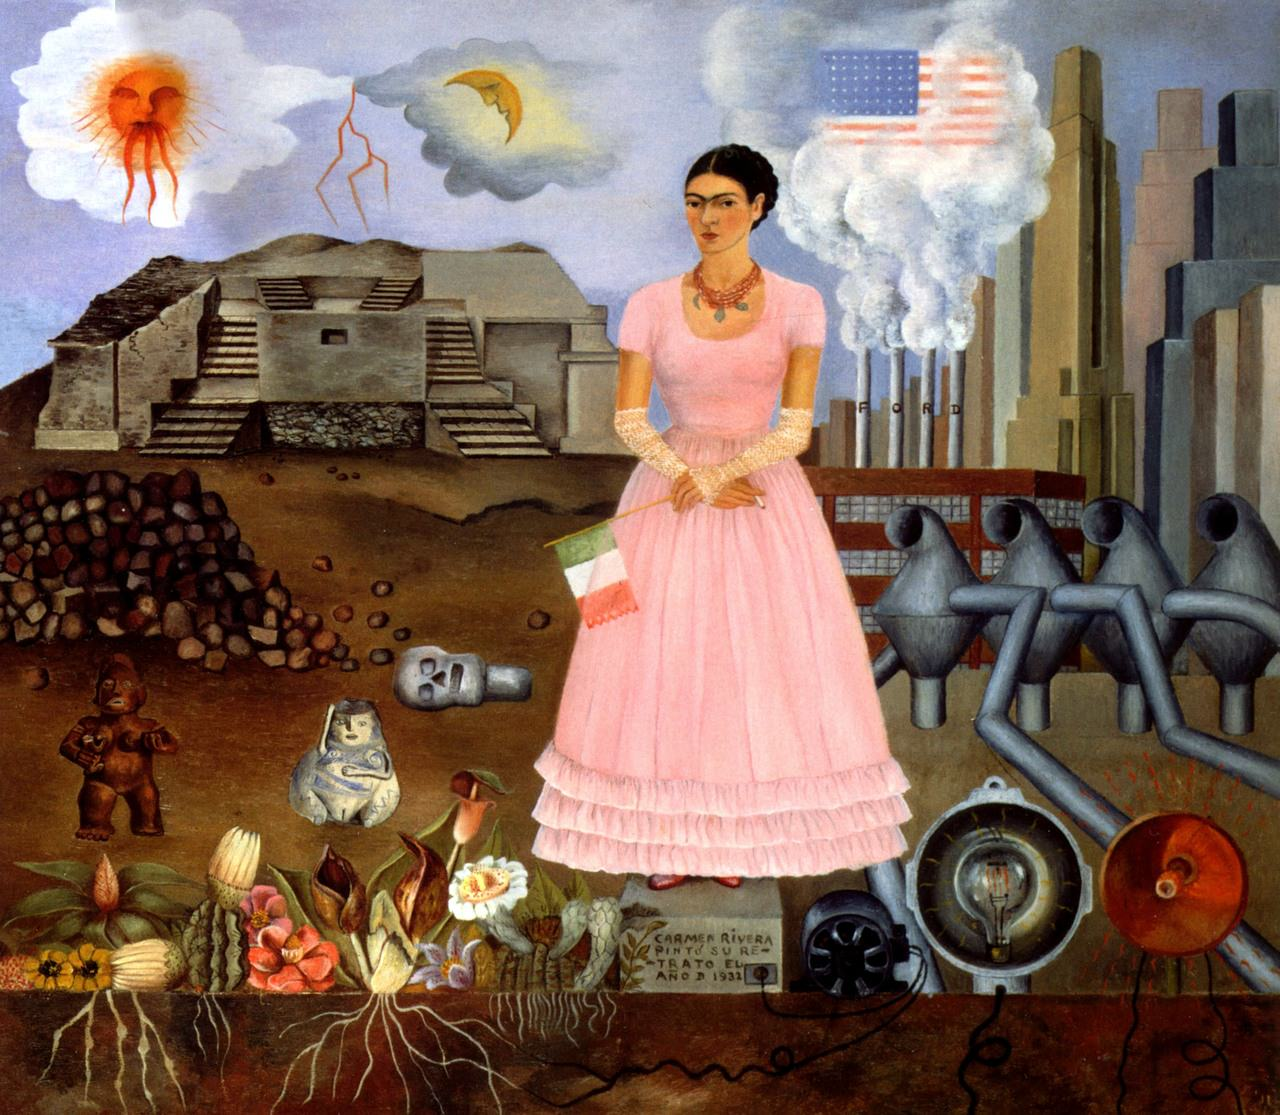 Frida Kahlo's Self-Portrait on the Borderline Between Mexico and the United States (1932)